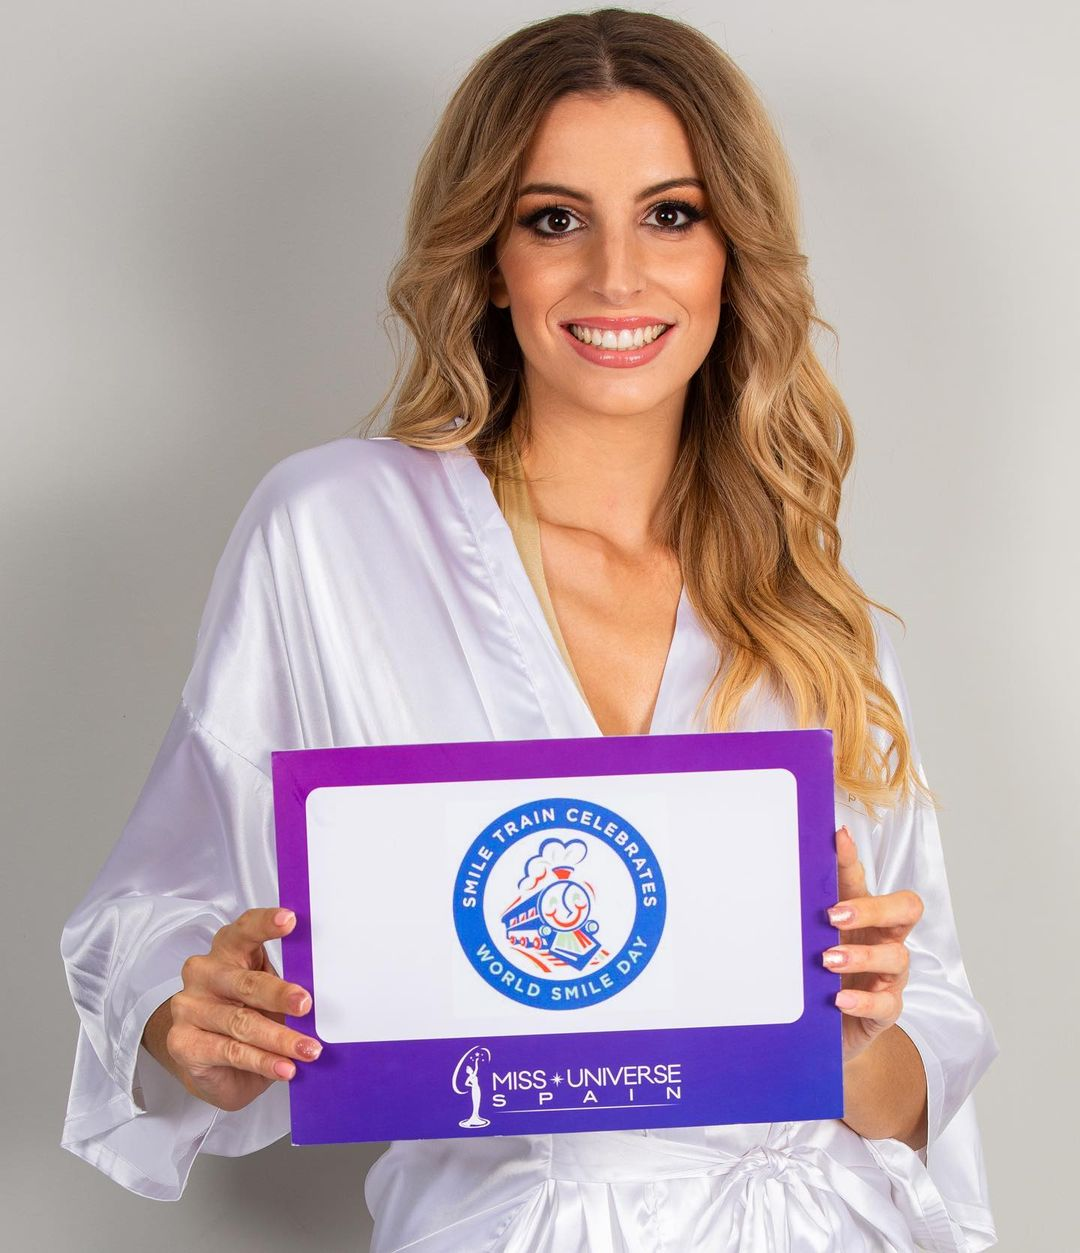 candidatas a miss universe spain 2020. final: 21 nov. - Página 4 Iwmdhsyd